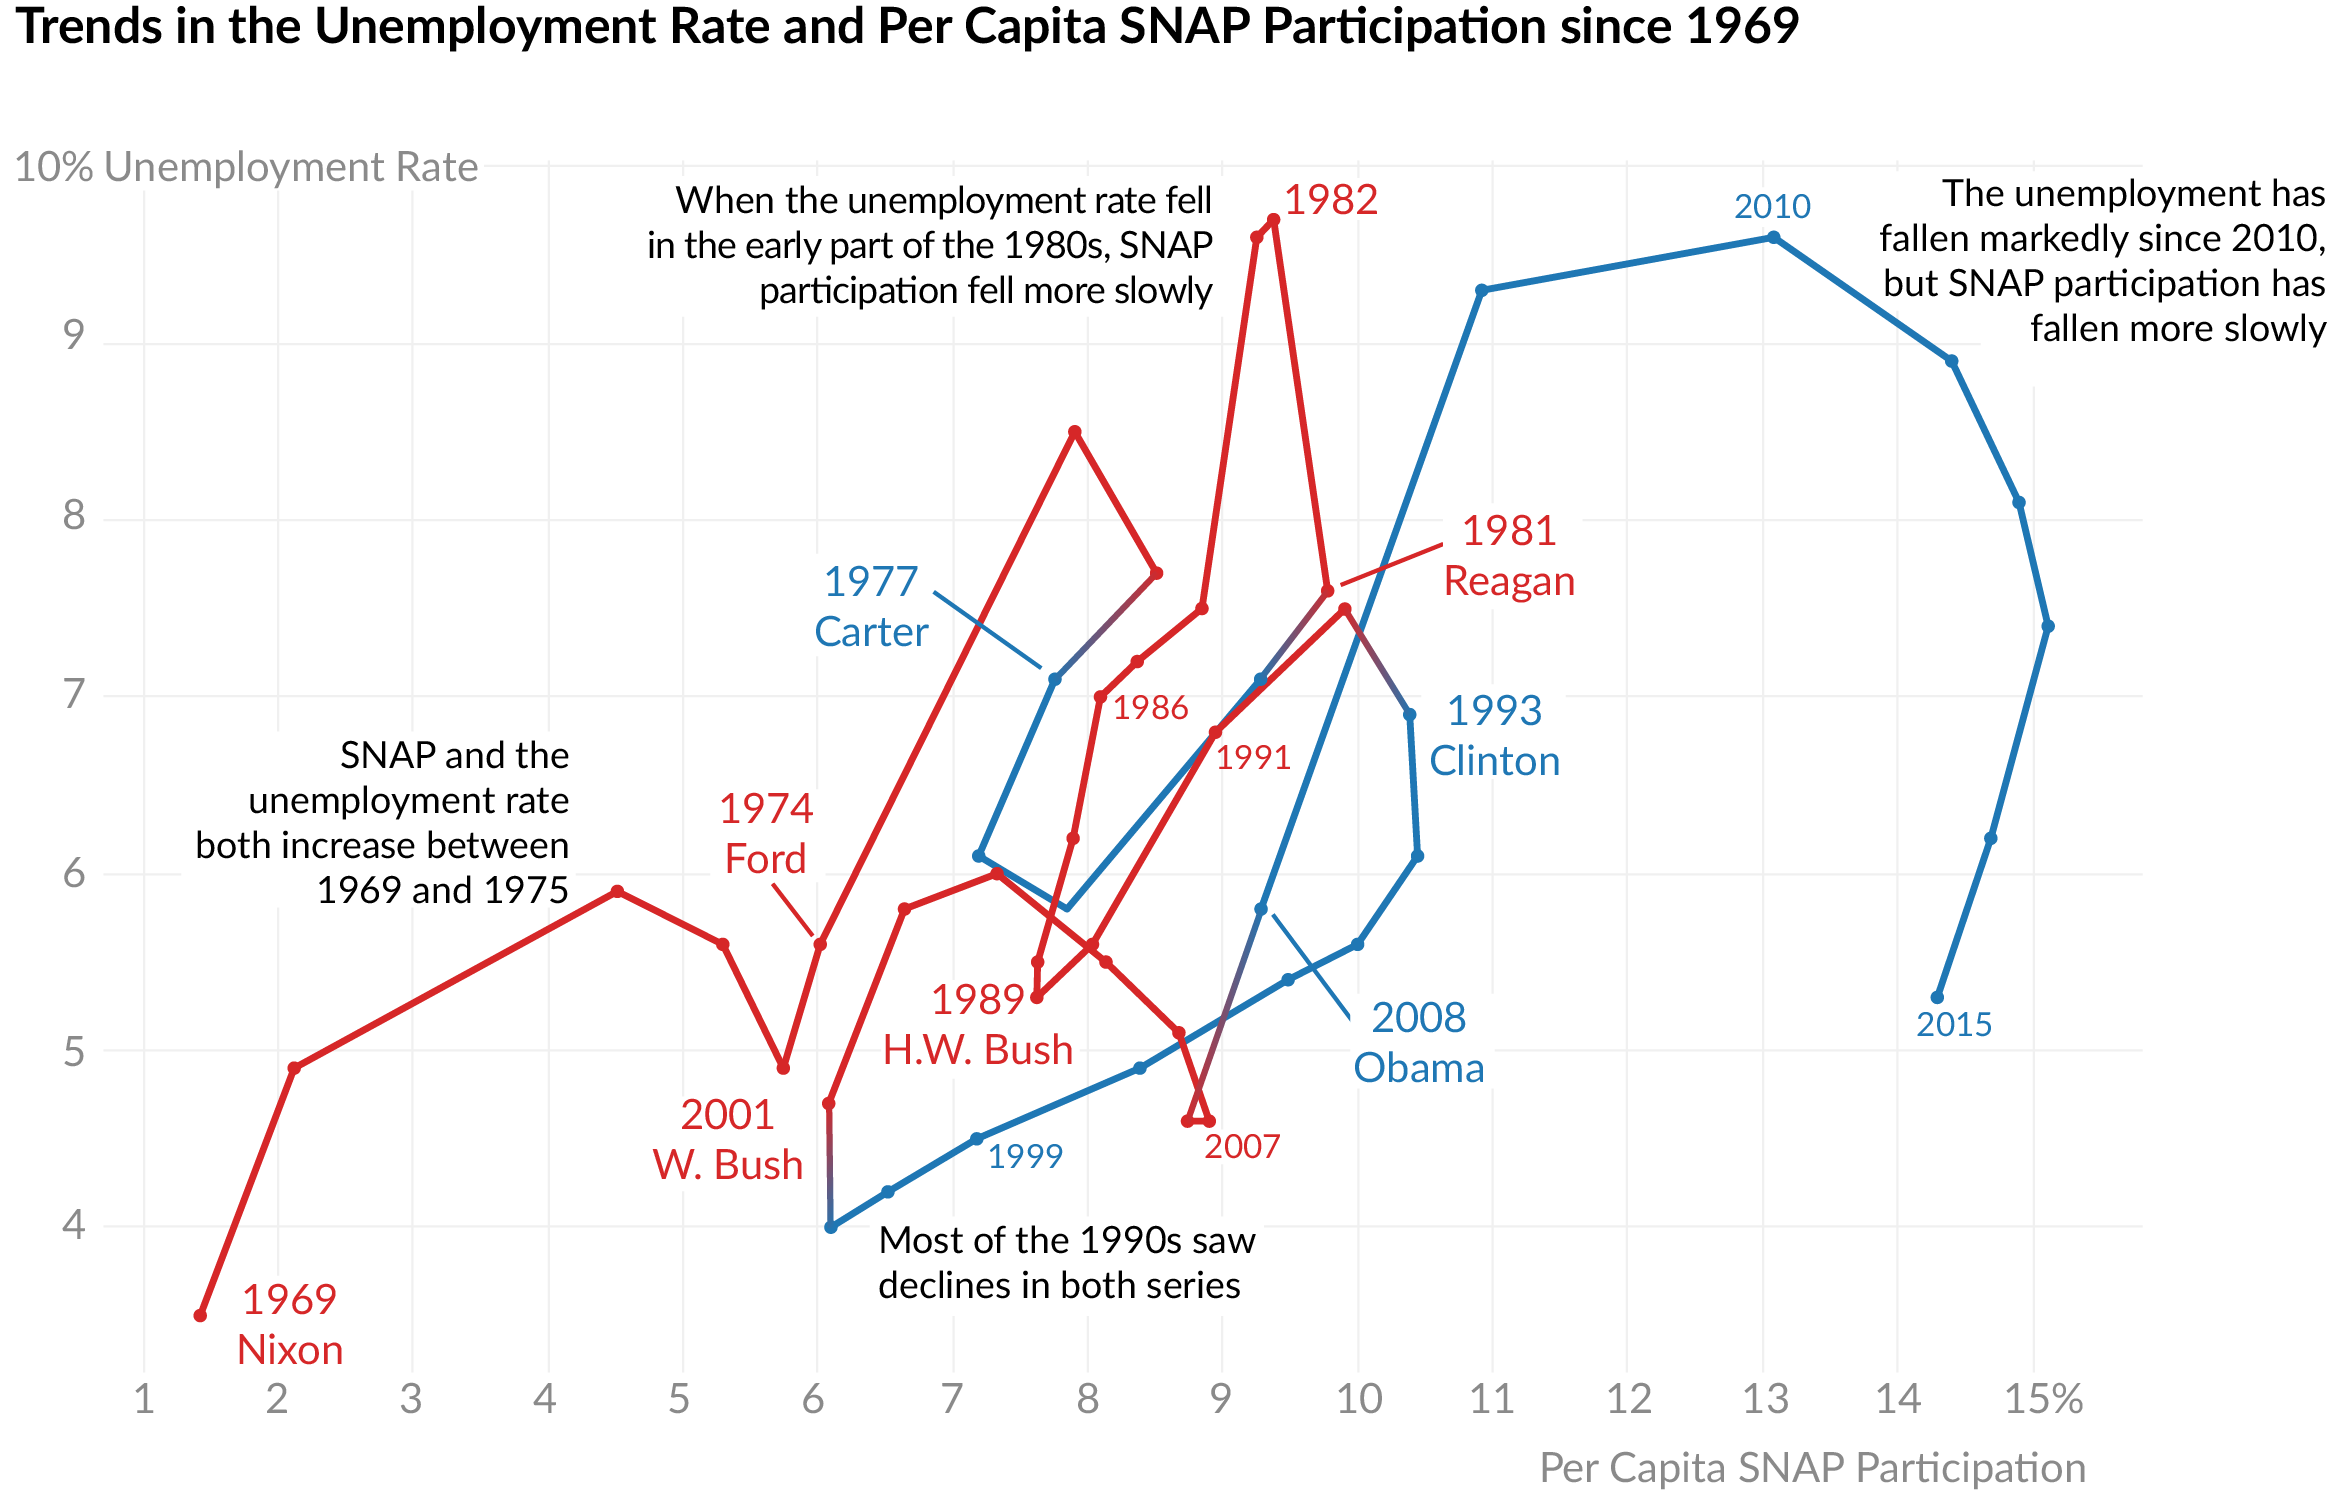 Unemployment and SNAP trends